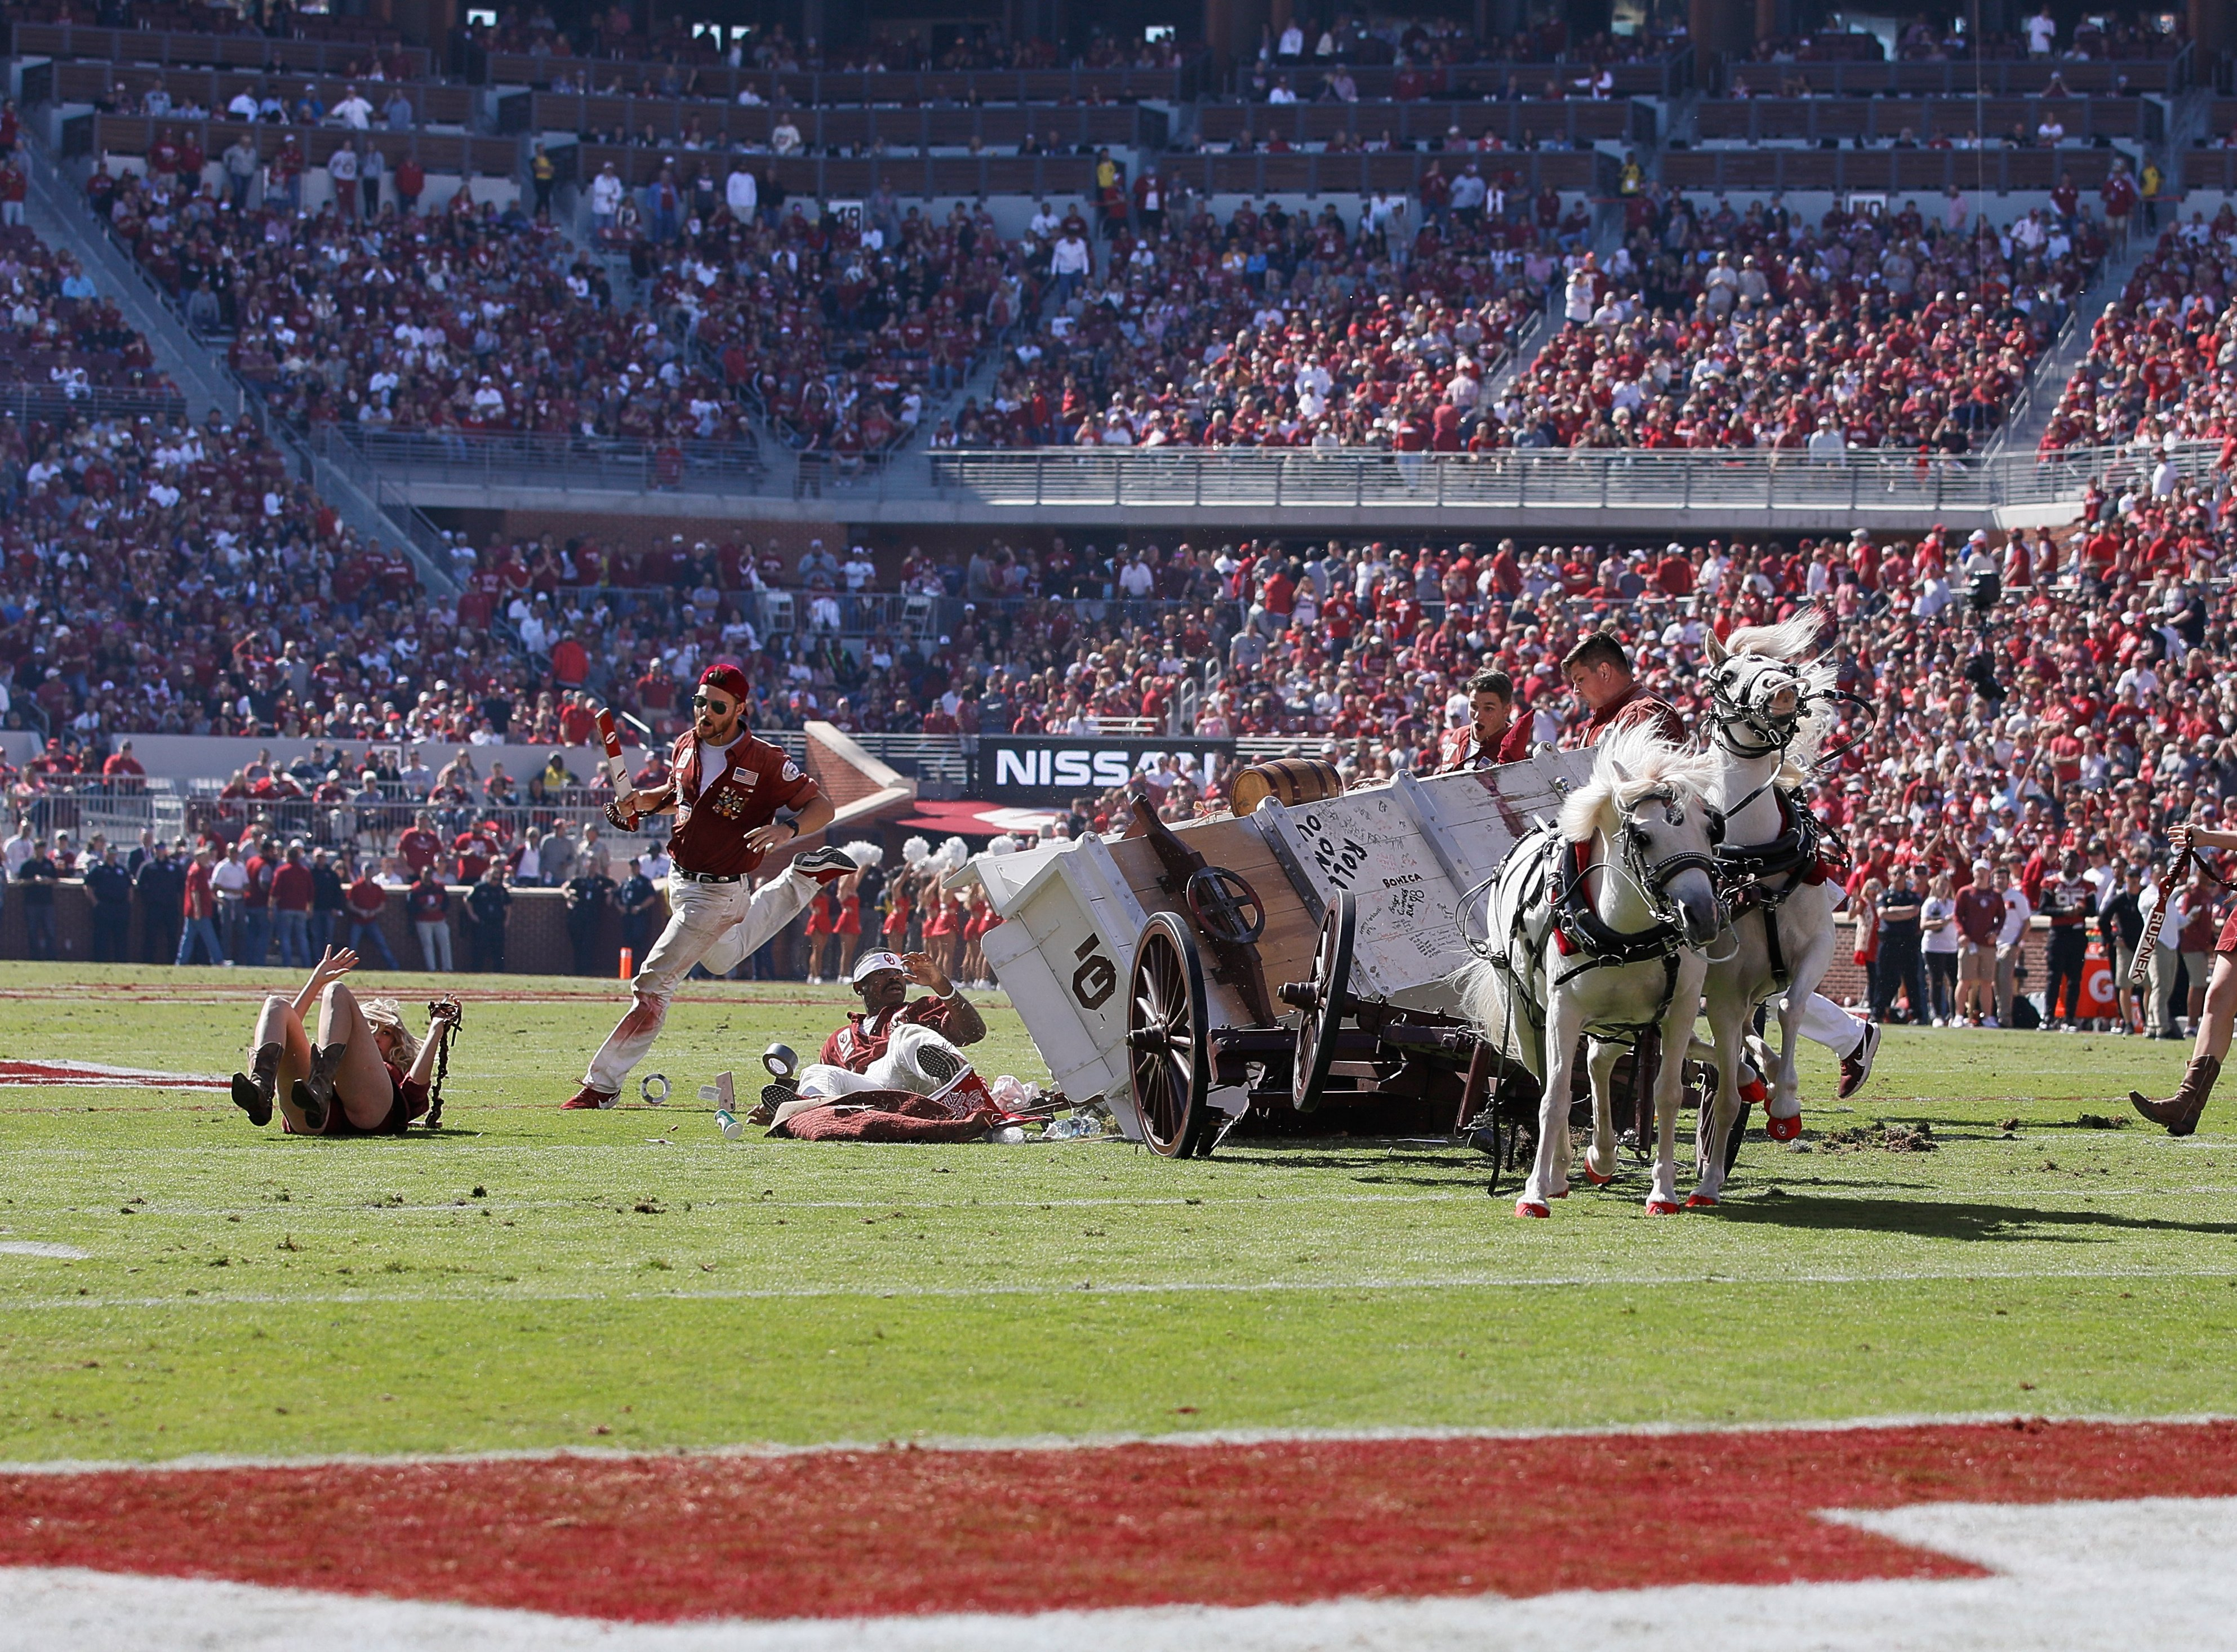 University of Oklahoma's iconic Sooner Schooner crashed during a touchdown celebration